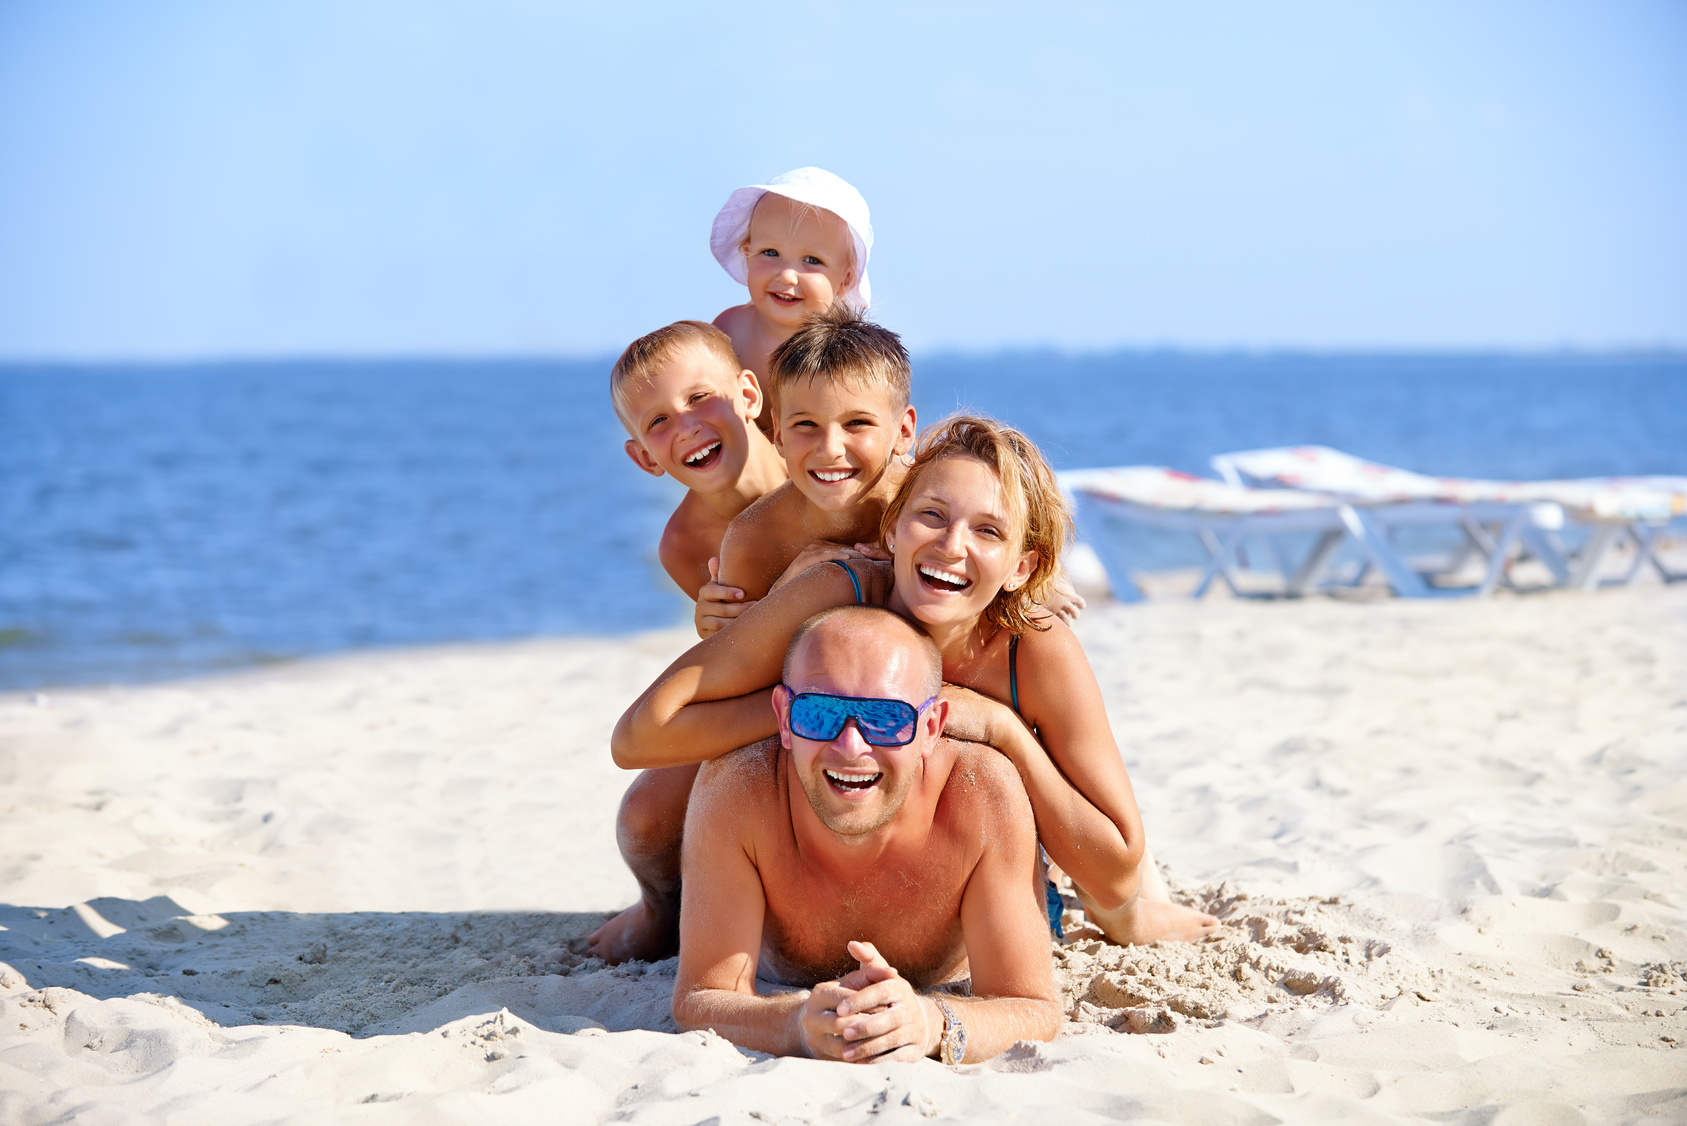 Mother and father with three children on the beach | sense organics - organic baby clothes